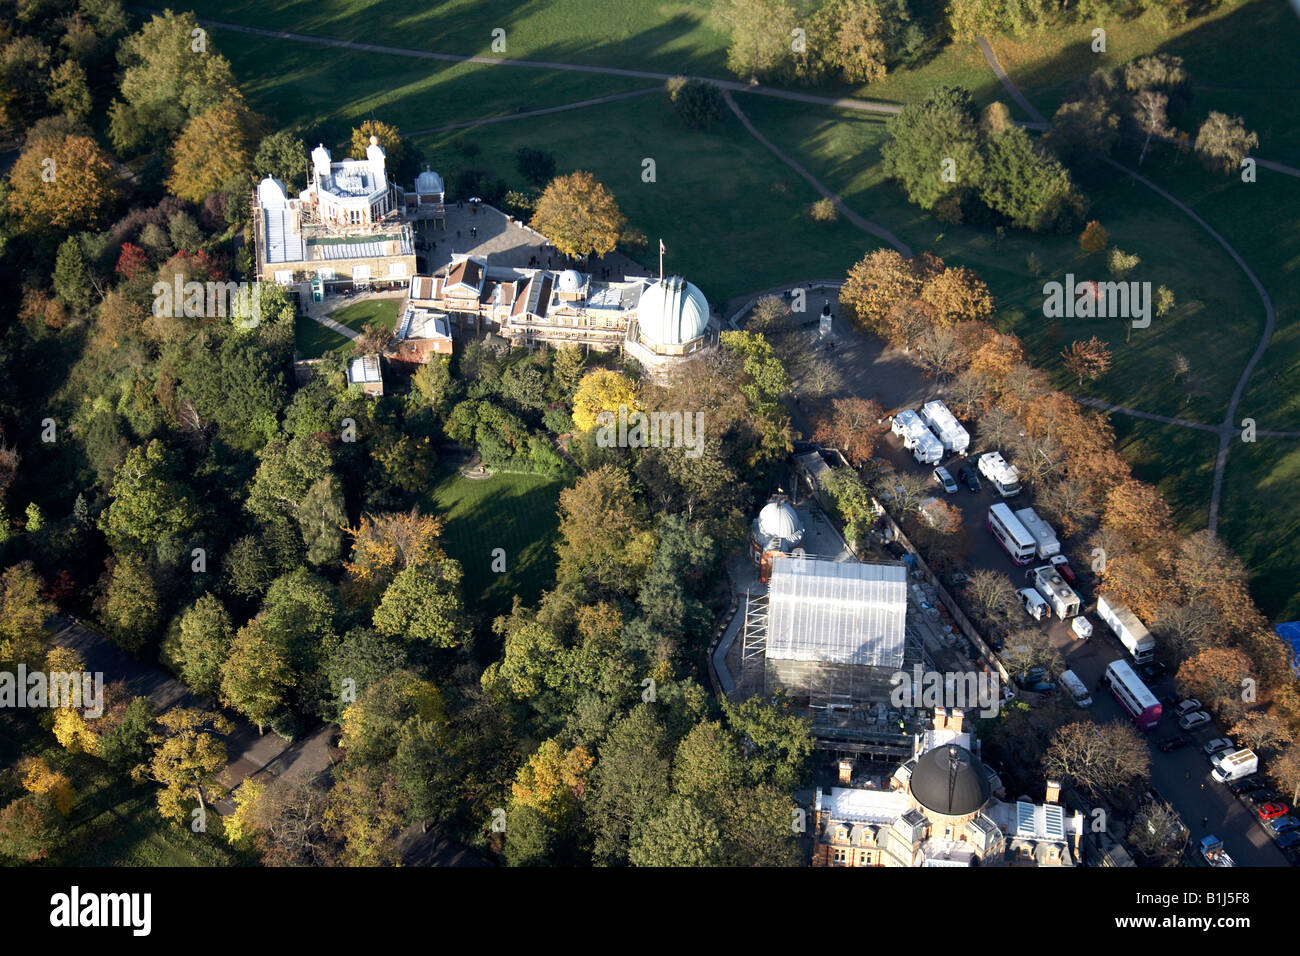 Aerial view north west of The Royal Observatory Greenwich Park London SE10 England UK - Stock Image